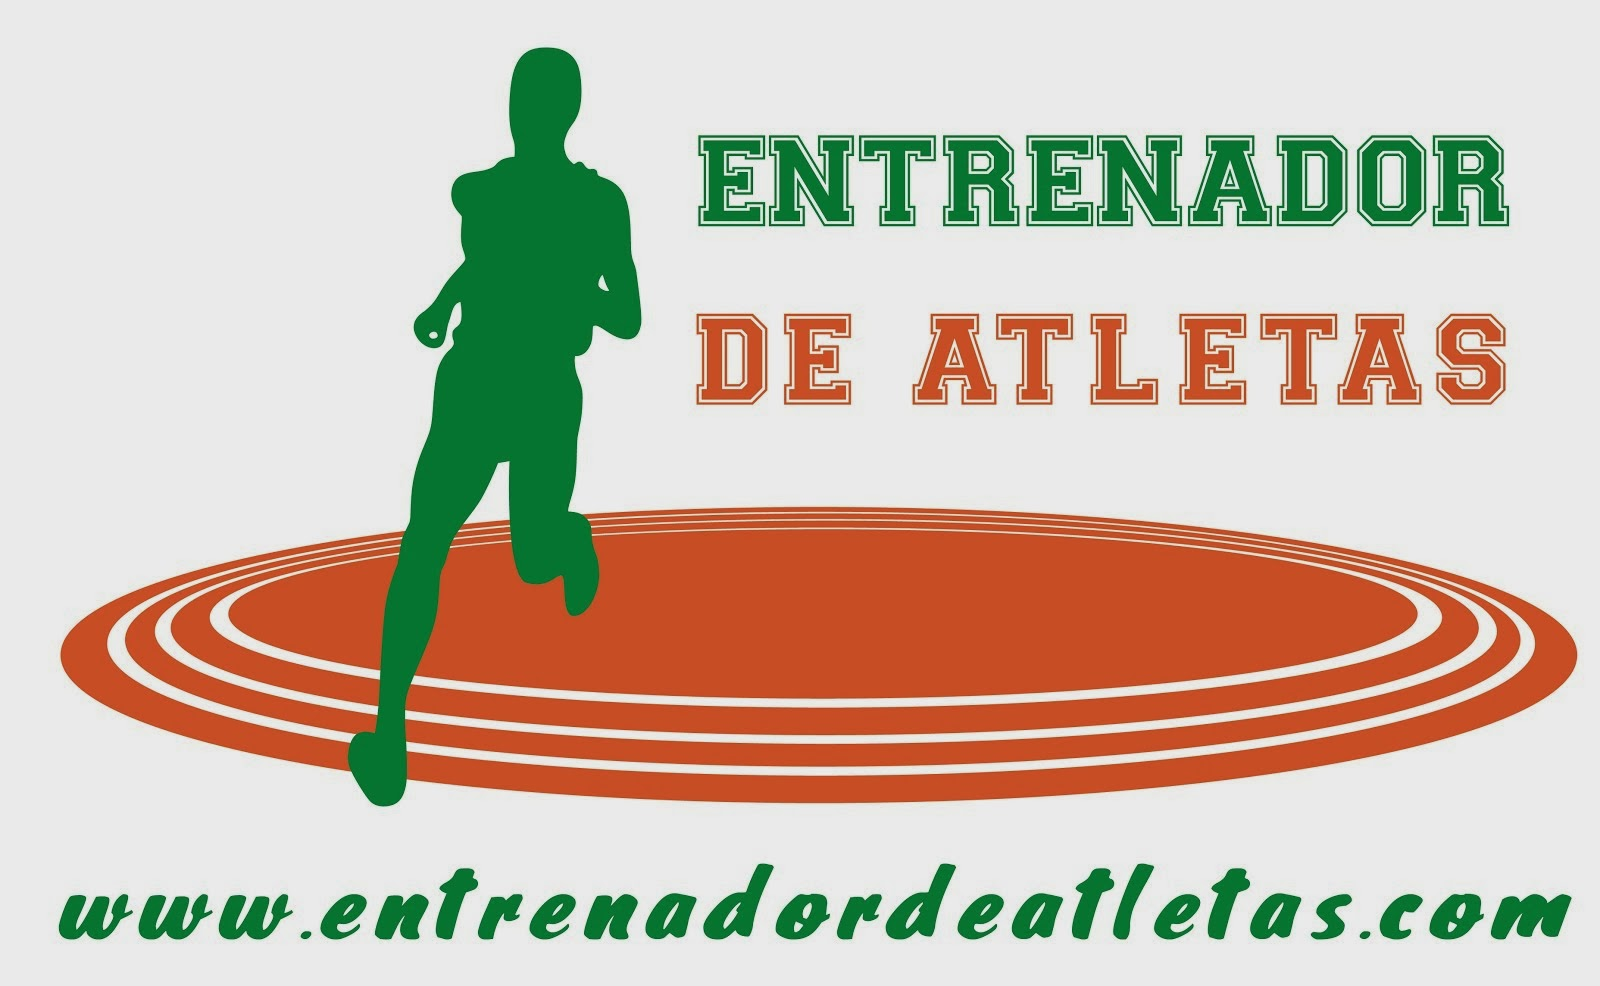 entrenadordeatletas@gmail.com